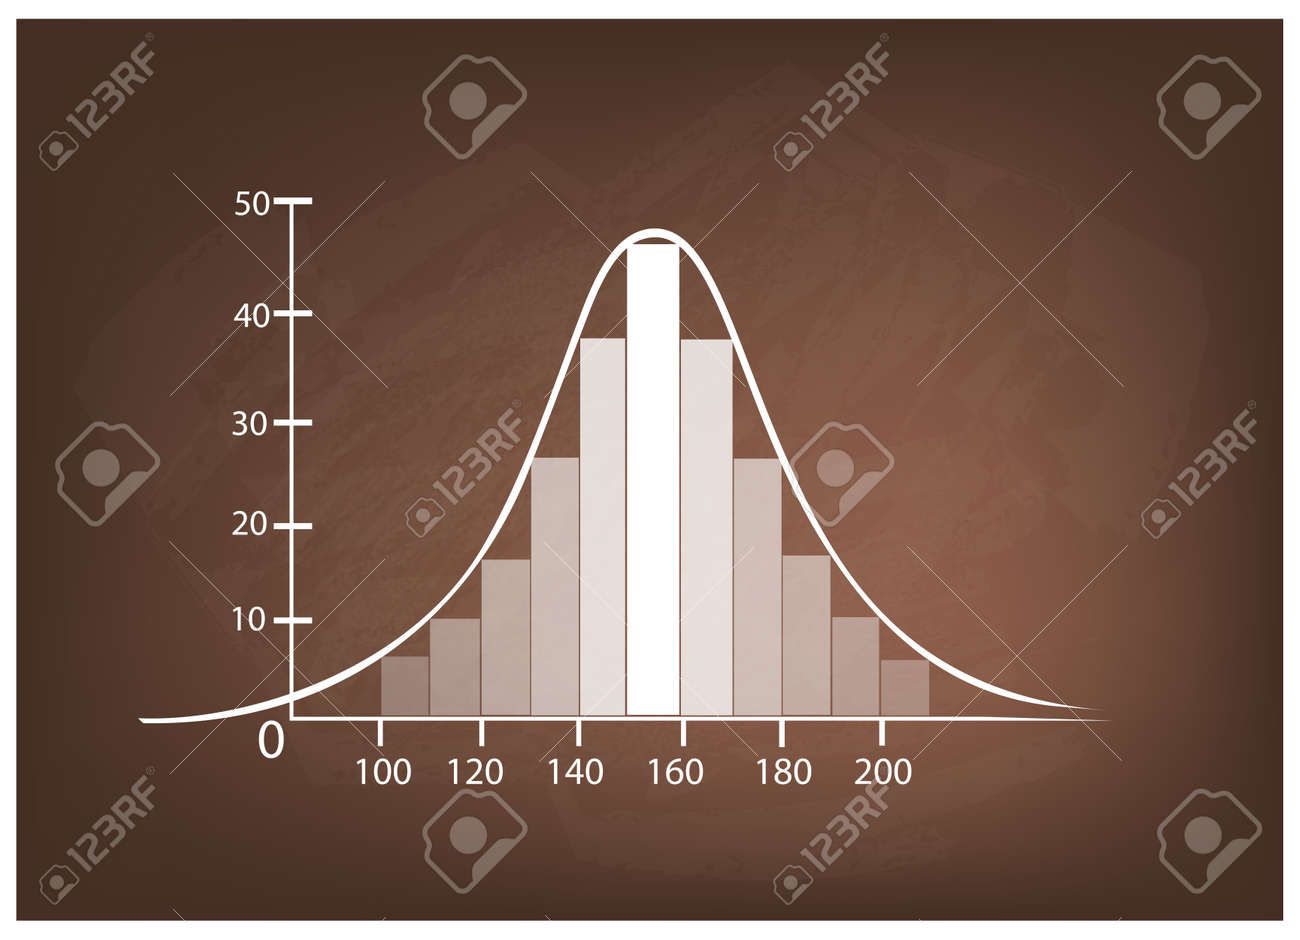 Business and Marketing Concepts, Illustration of Standard Deviation, Gaussian Bell or Normal Distribution Curve on A Chalkboard Background. - 61021771